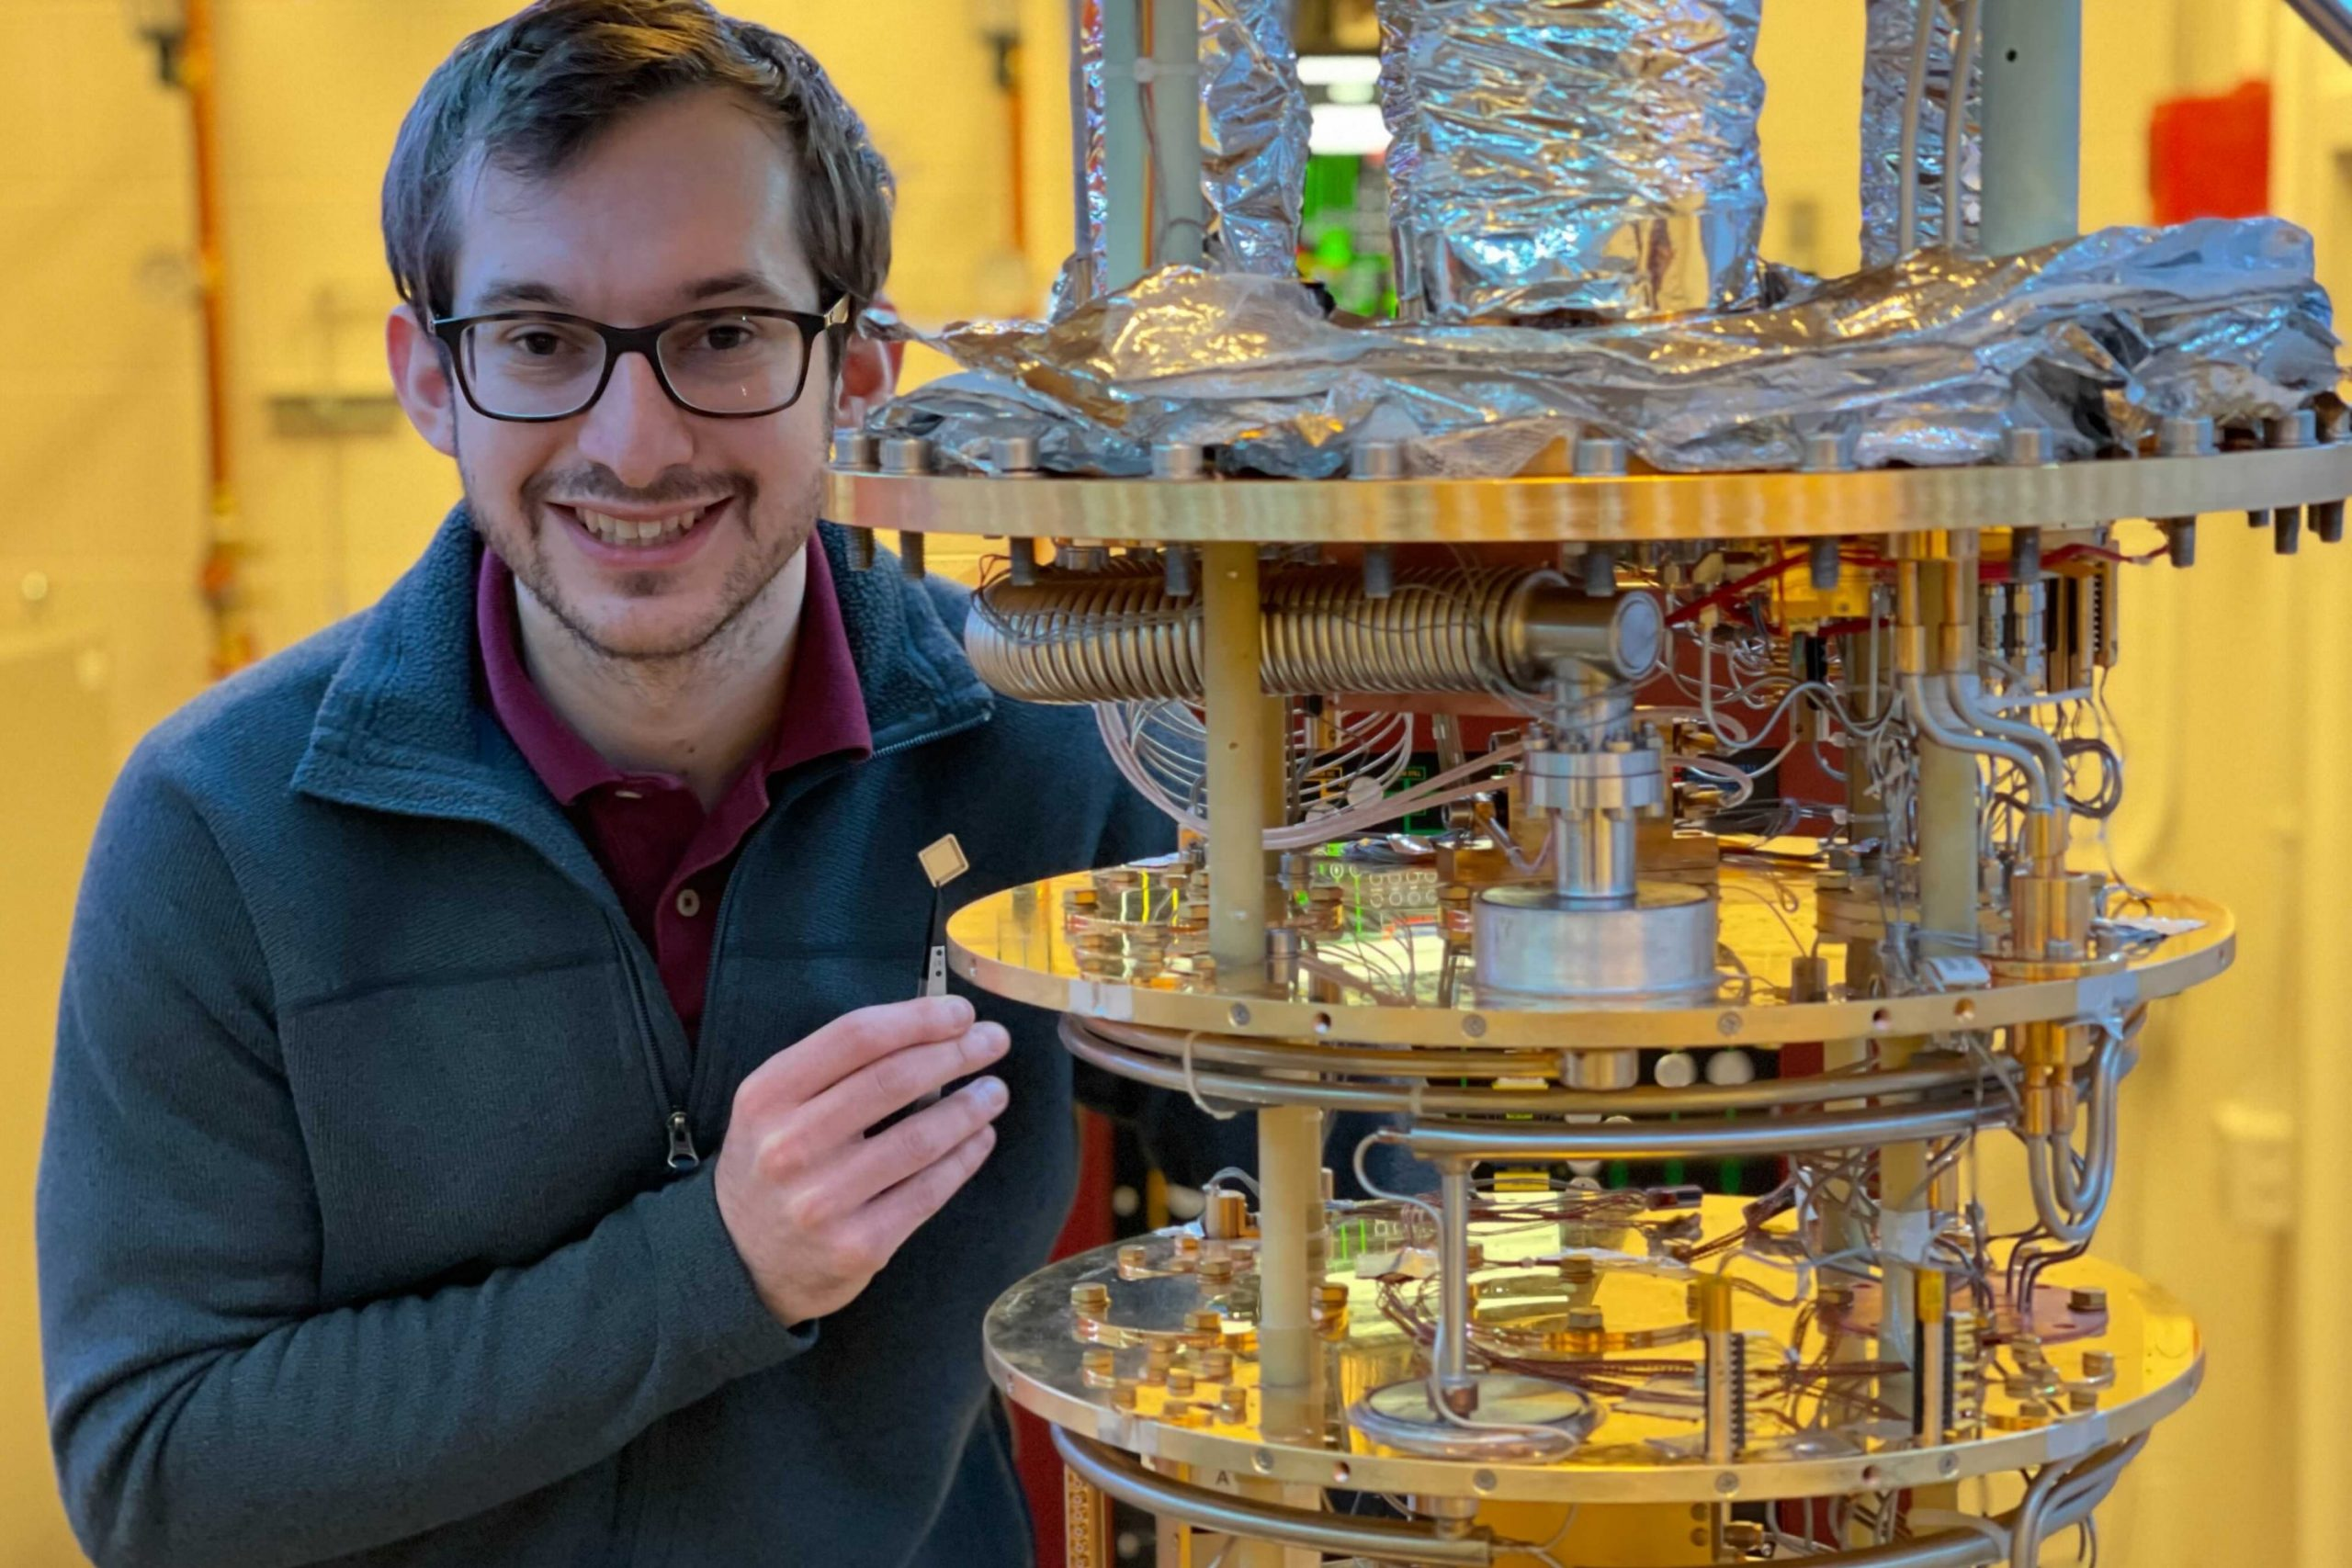 A graduate student smiles with a graphene-based electronic device.